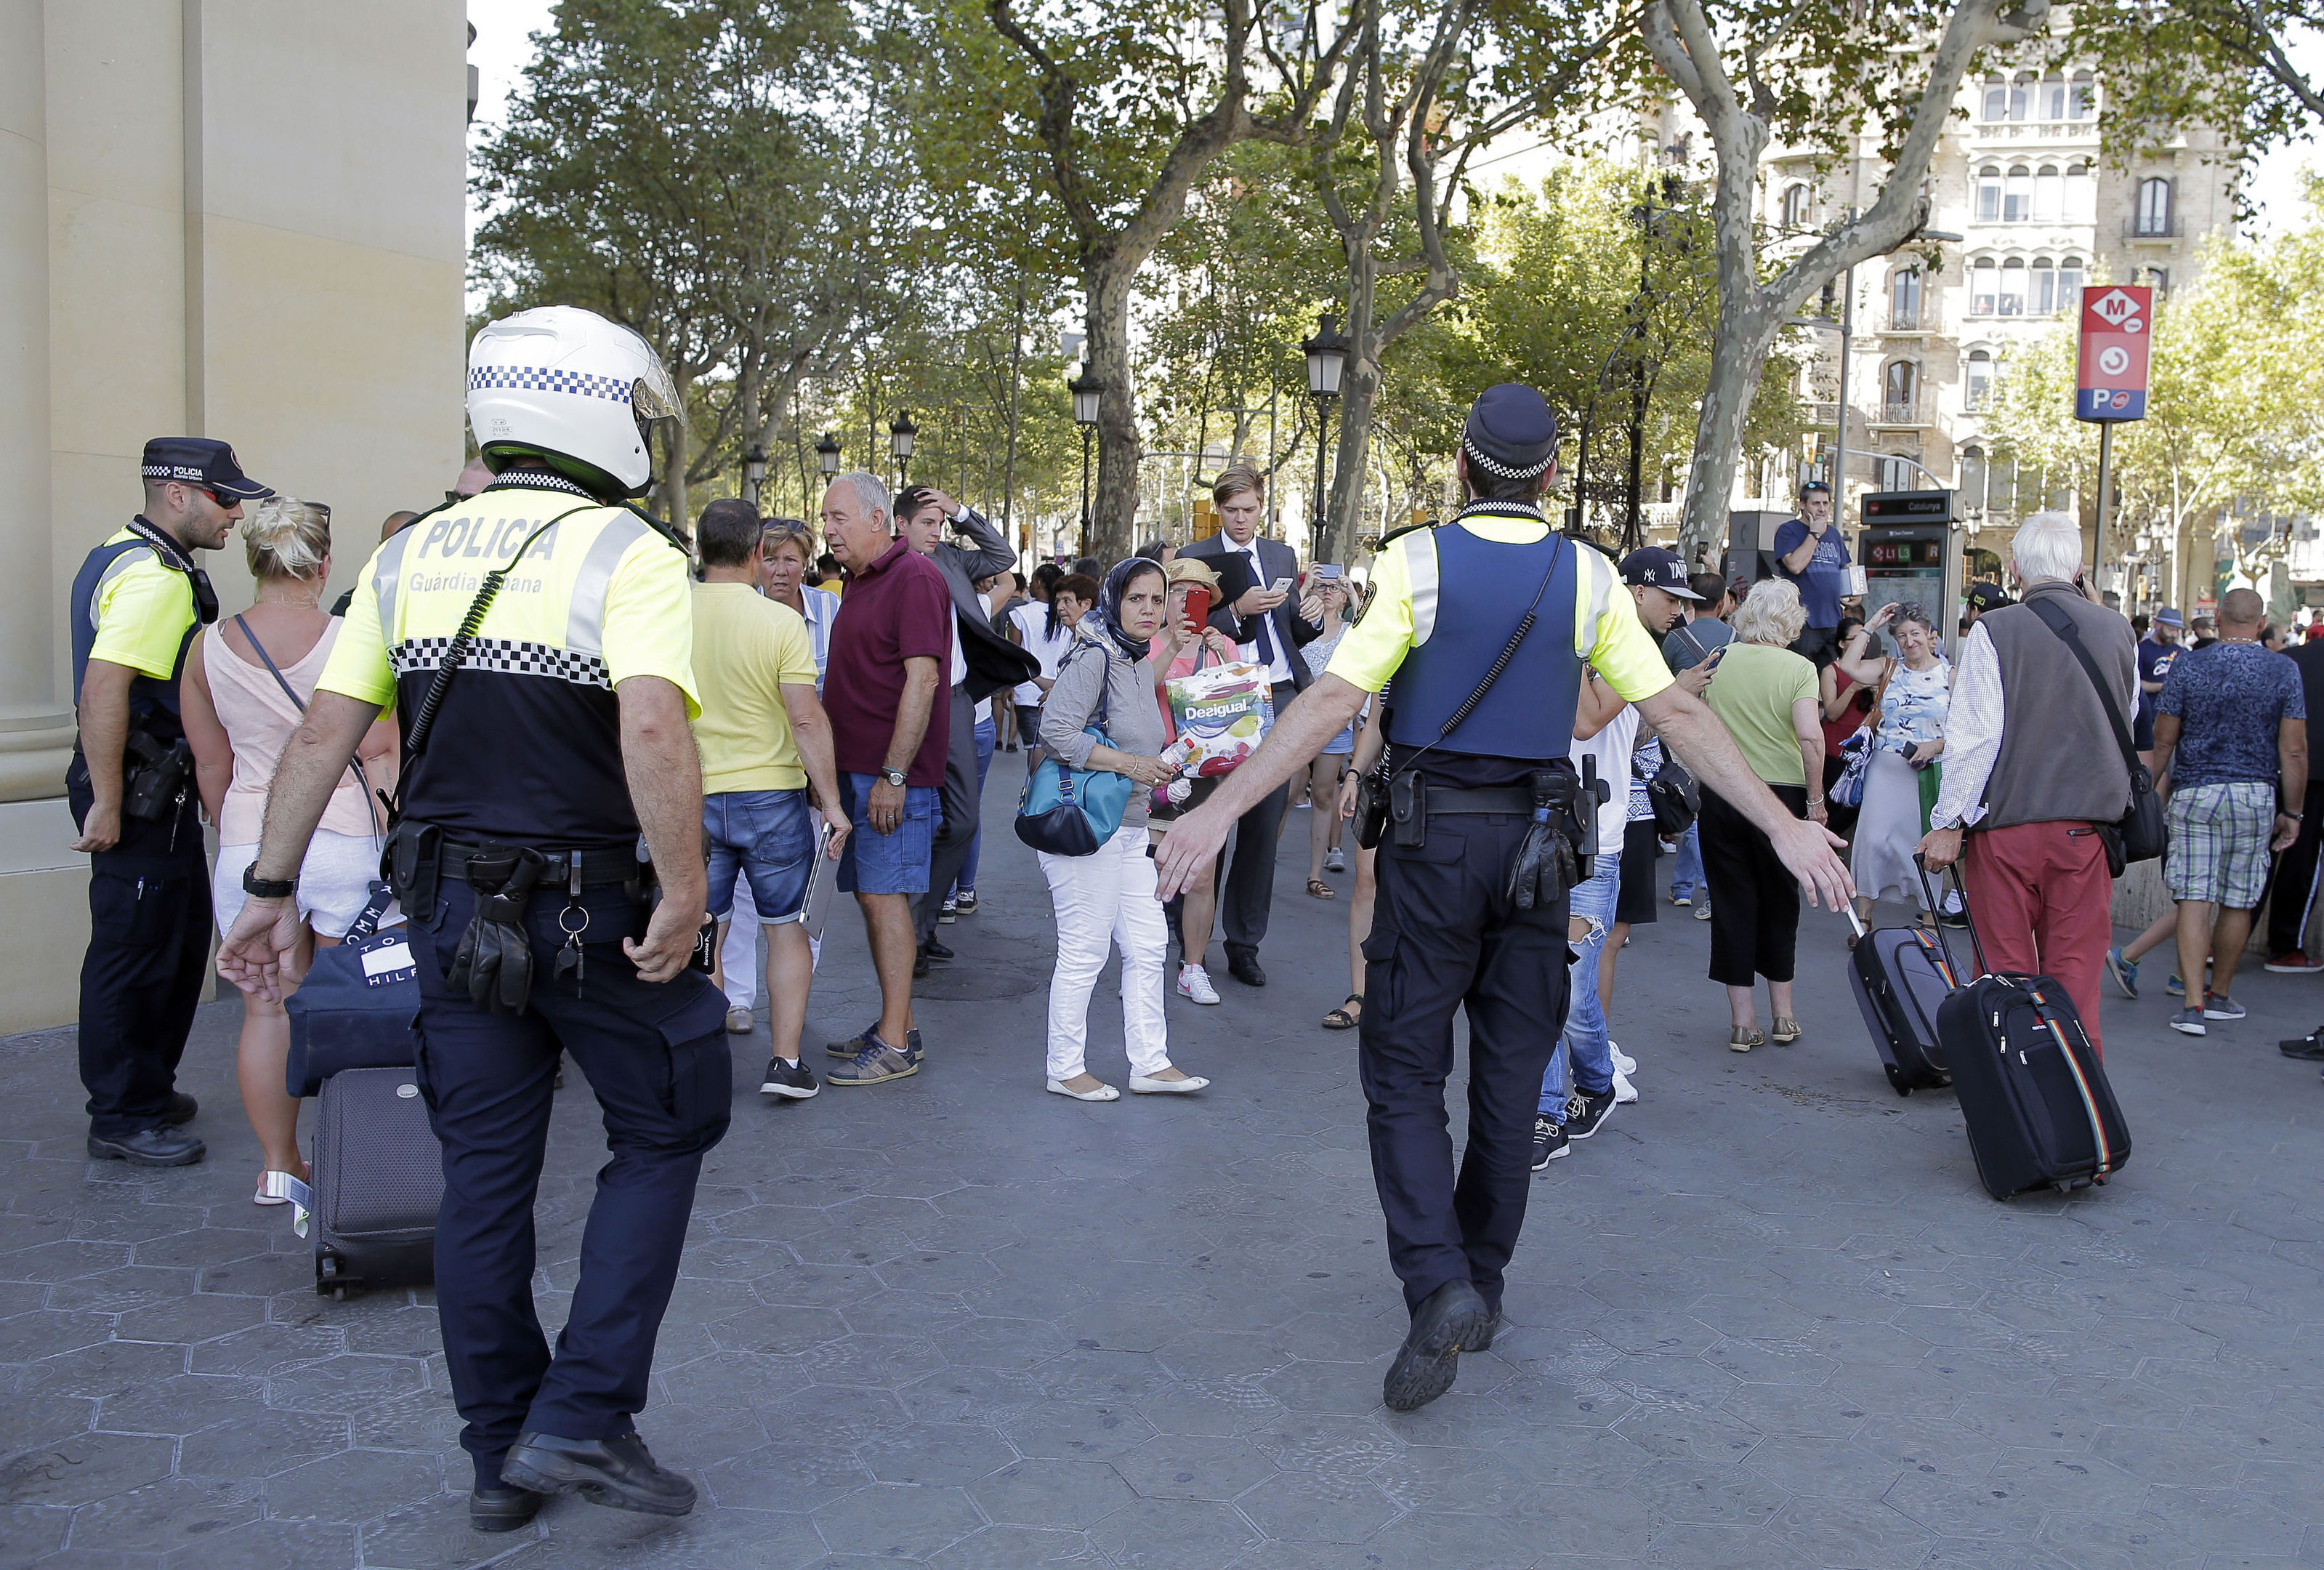 Police officers tell members of the public to leave the scene (AP Photo/Manu Fernandez)